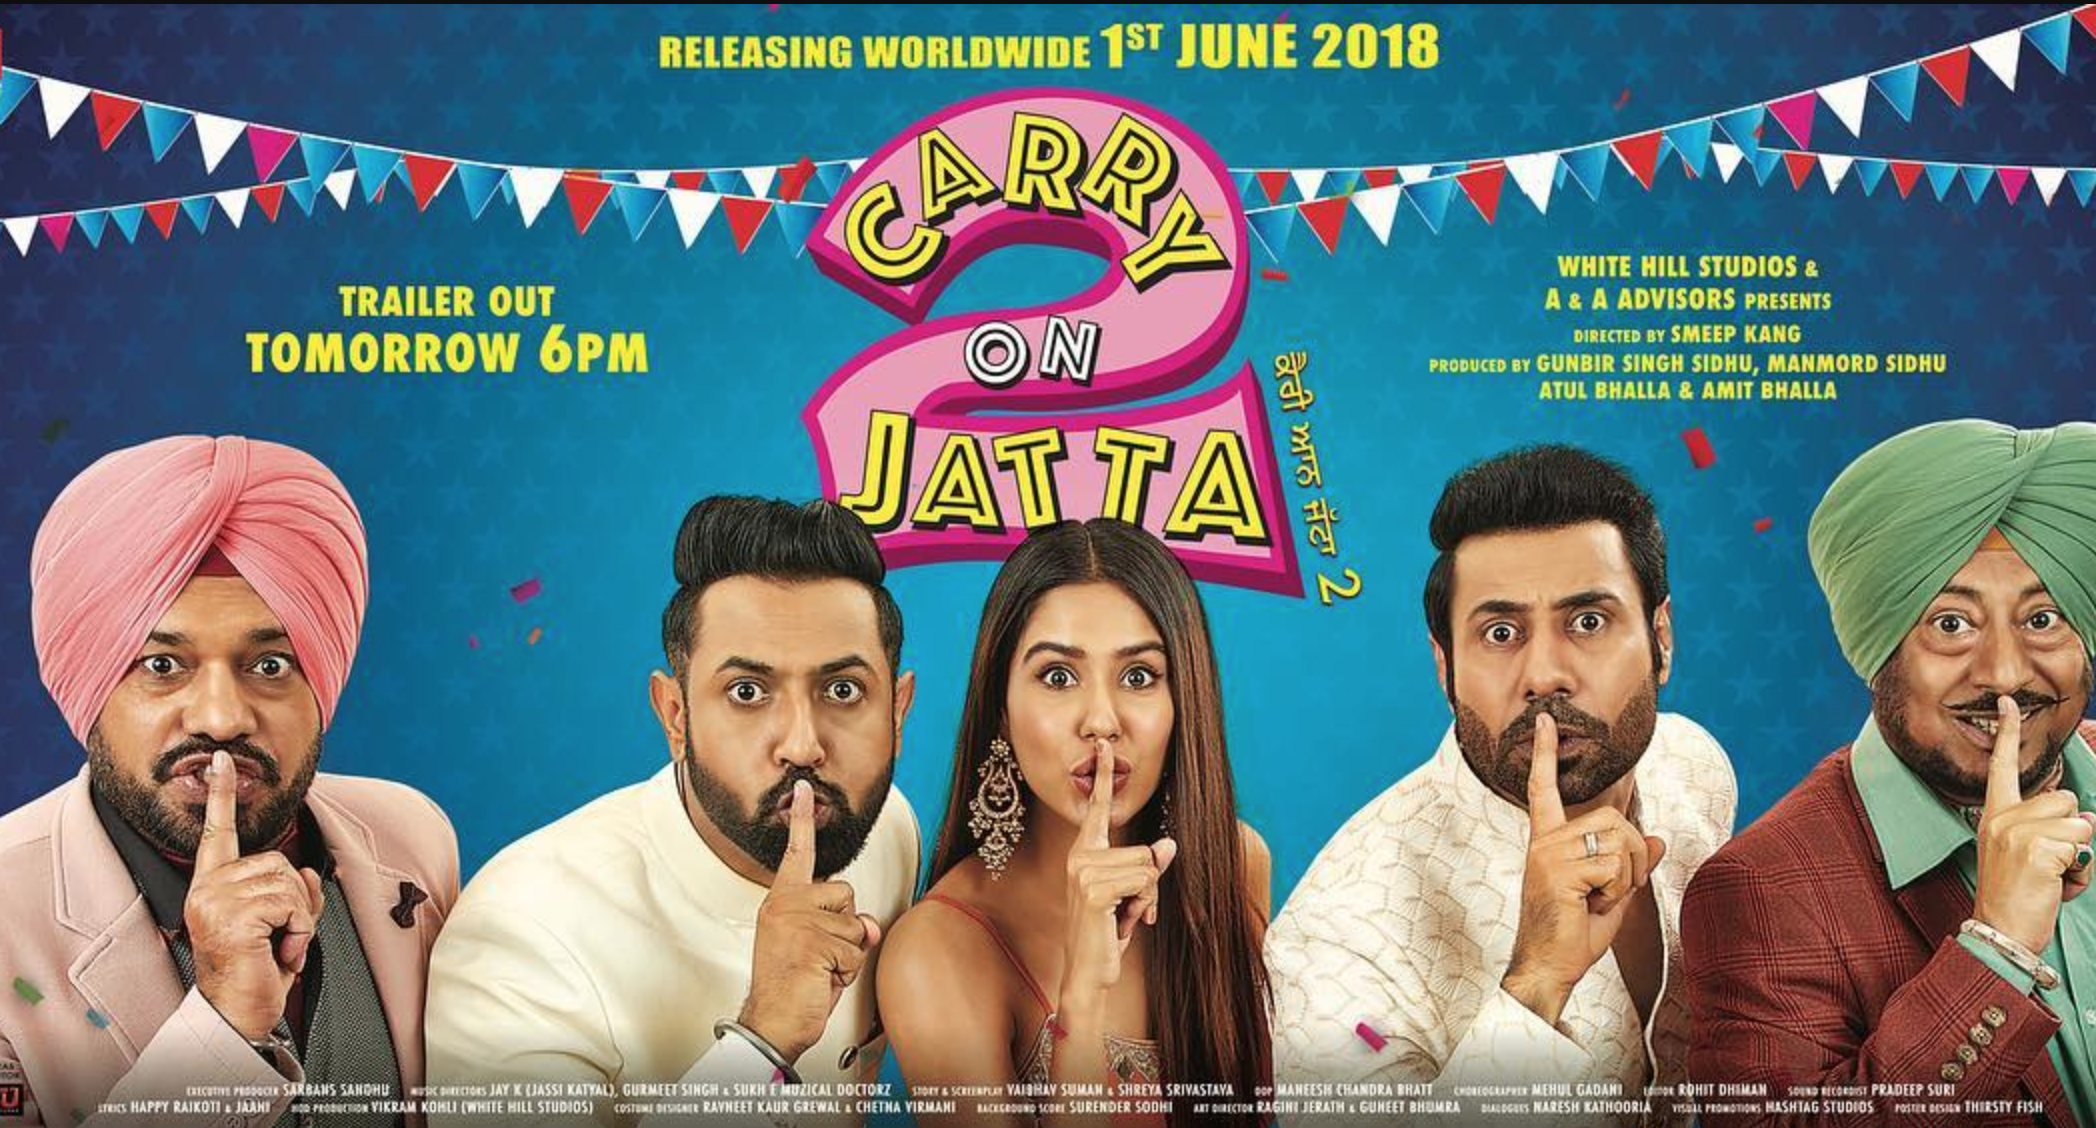 Carry On Jatta 2 - Trailer Launch Poster